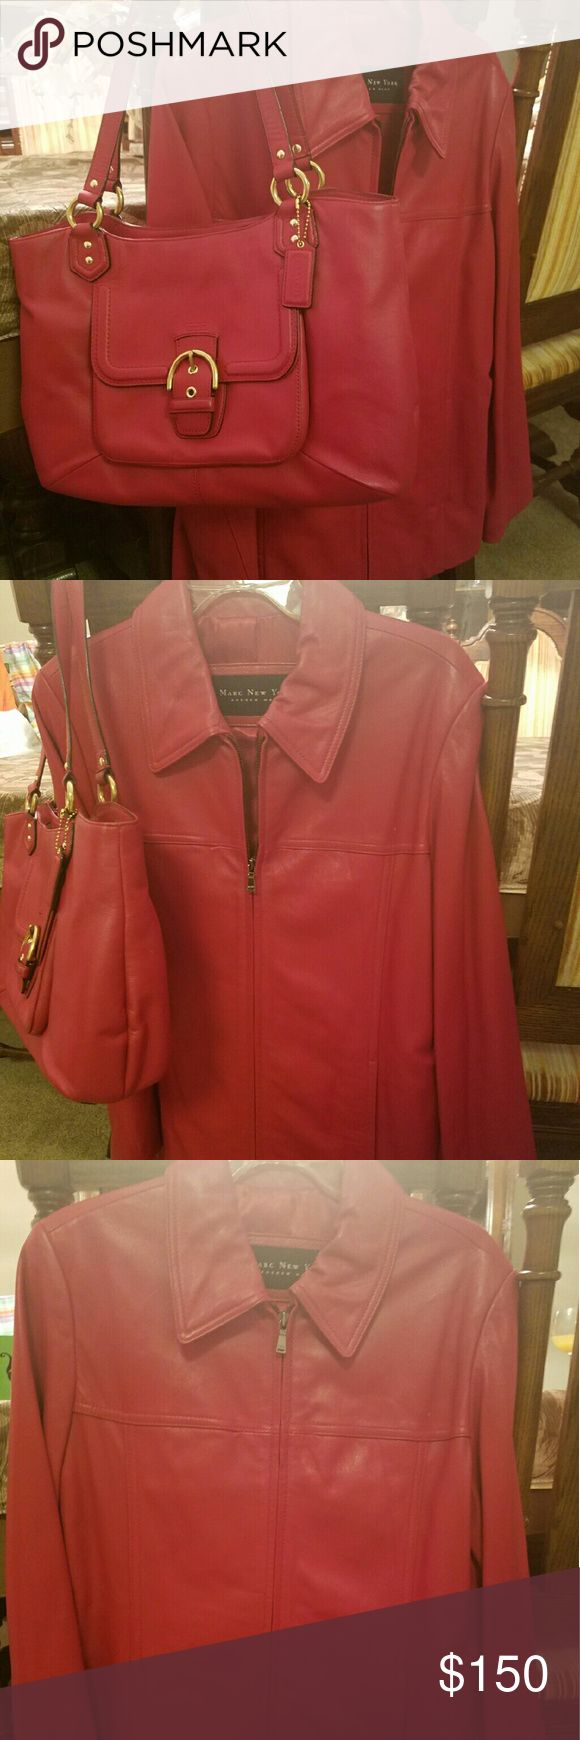 Red Coach Pocketbook and Andrew Marc jacket Bundled together are these 2 beautiful red pieces.  Red Coach Pocketbook and Andrew Marc large jacket Coach  Bags